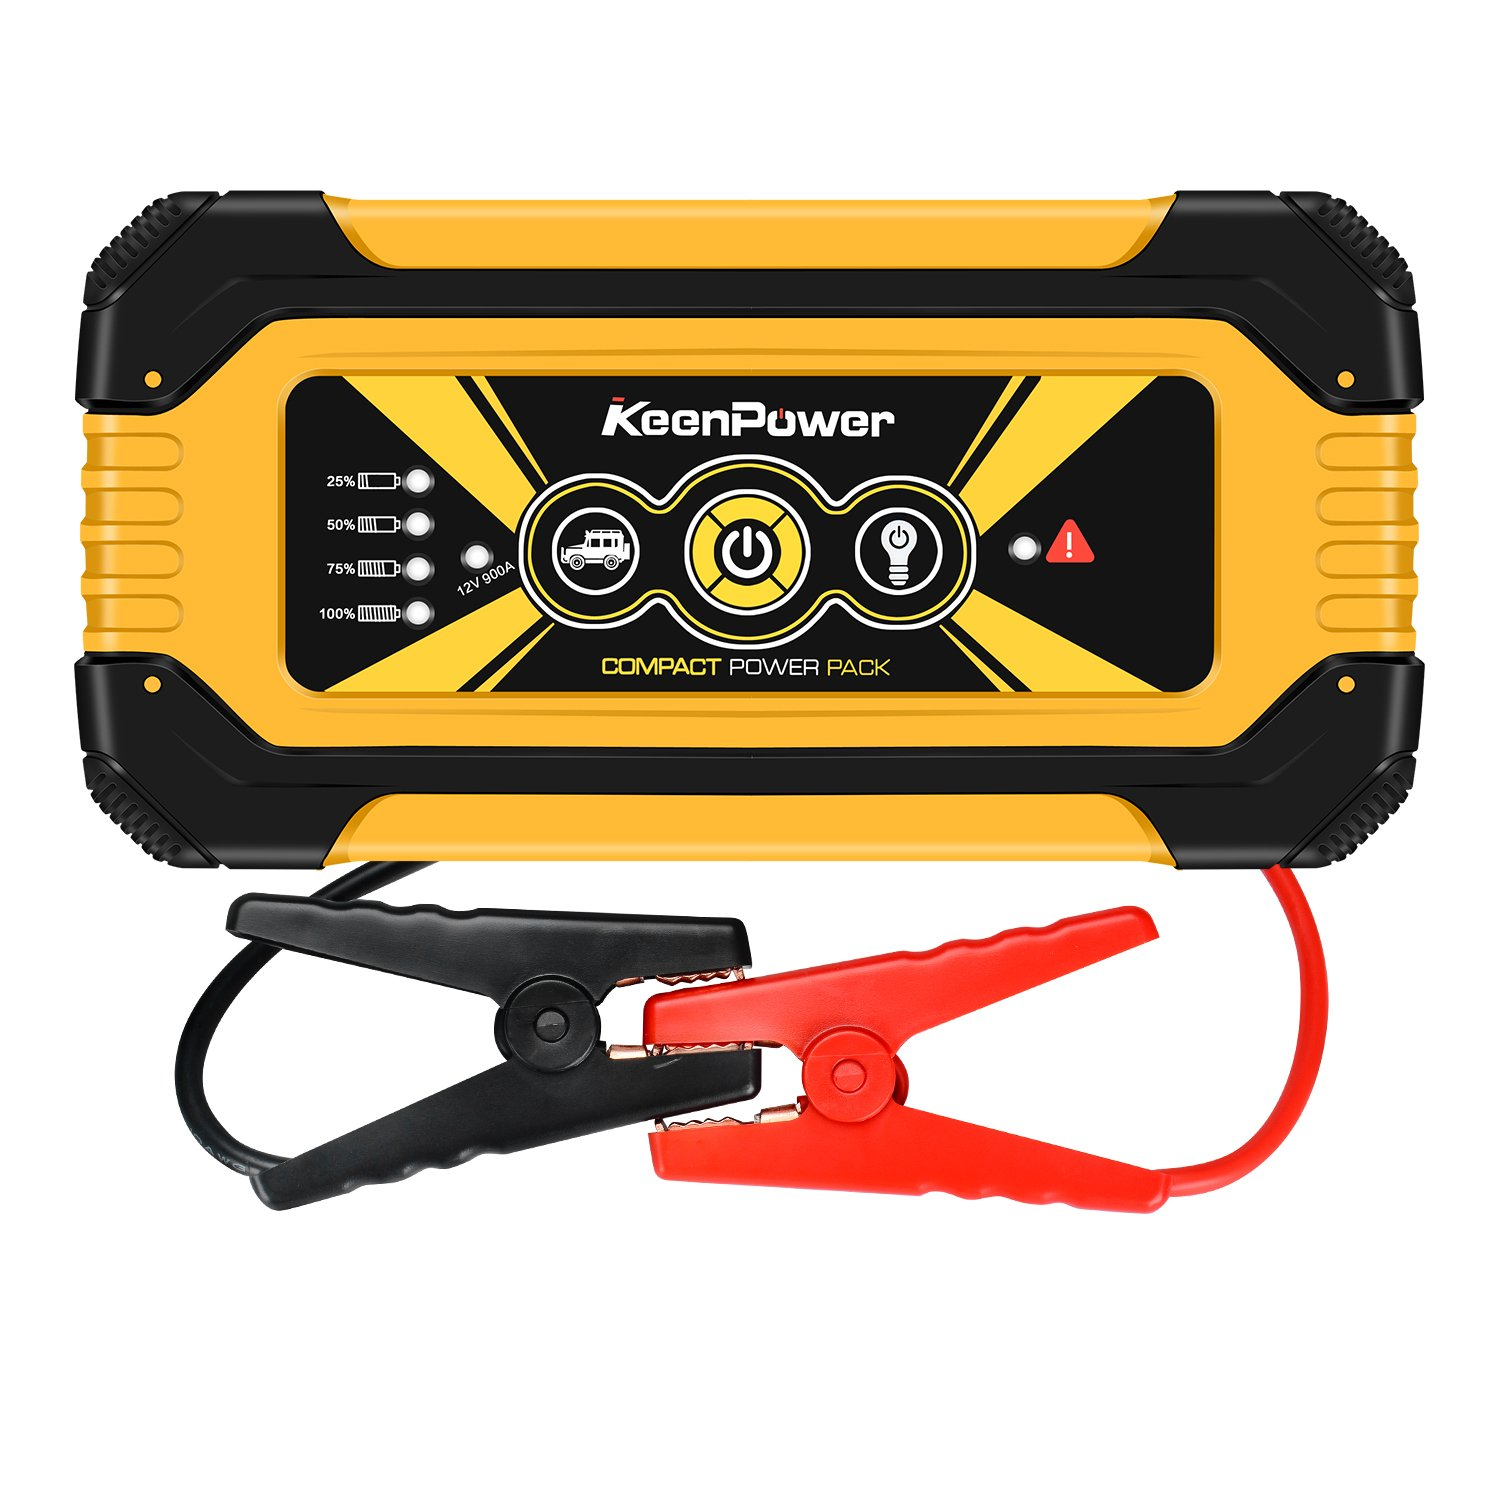 Keenpower Portable Car Jump Starter 900A Peak 18000mAH (Up to 6.0L Gas Engine) Auto Battery Booster Power Pack Phone Power Bank With Smart Charging Ports (900A YELLOW)